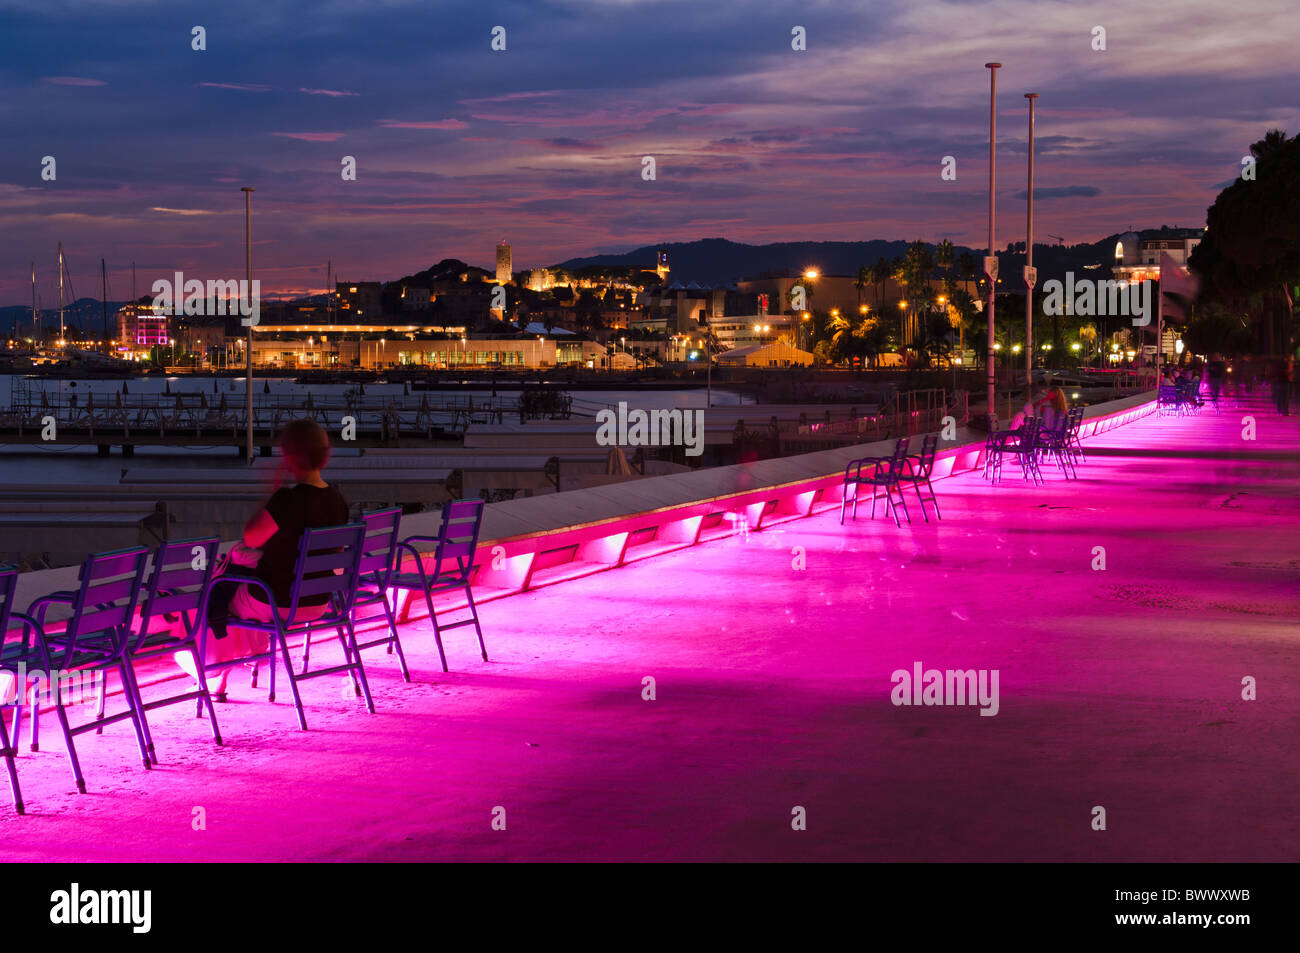 Colourful lighting on the promenade in the ' Croissette' area of Cannes Stock Photo